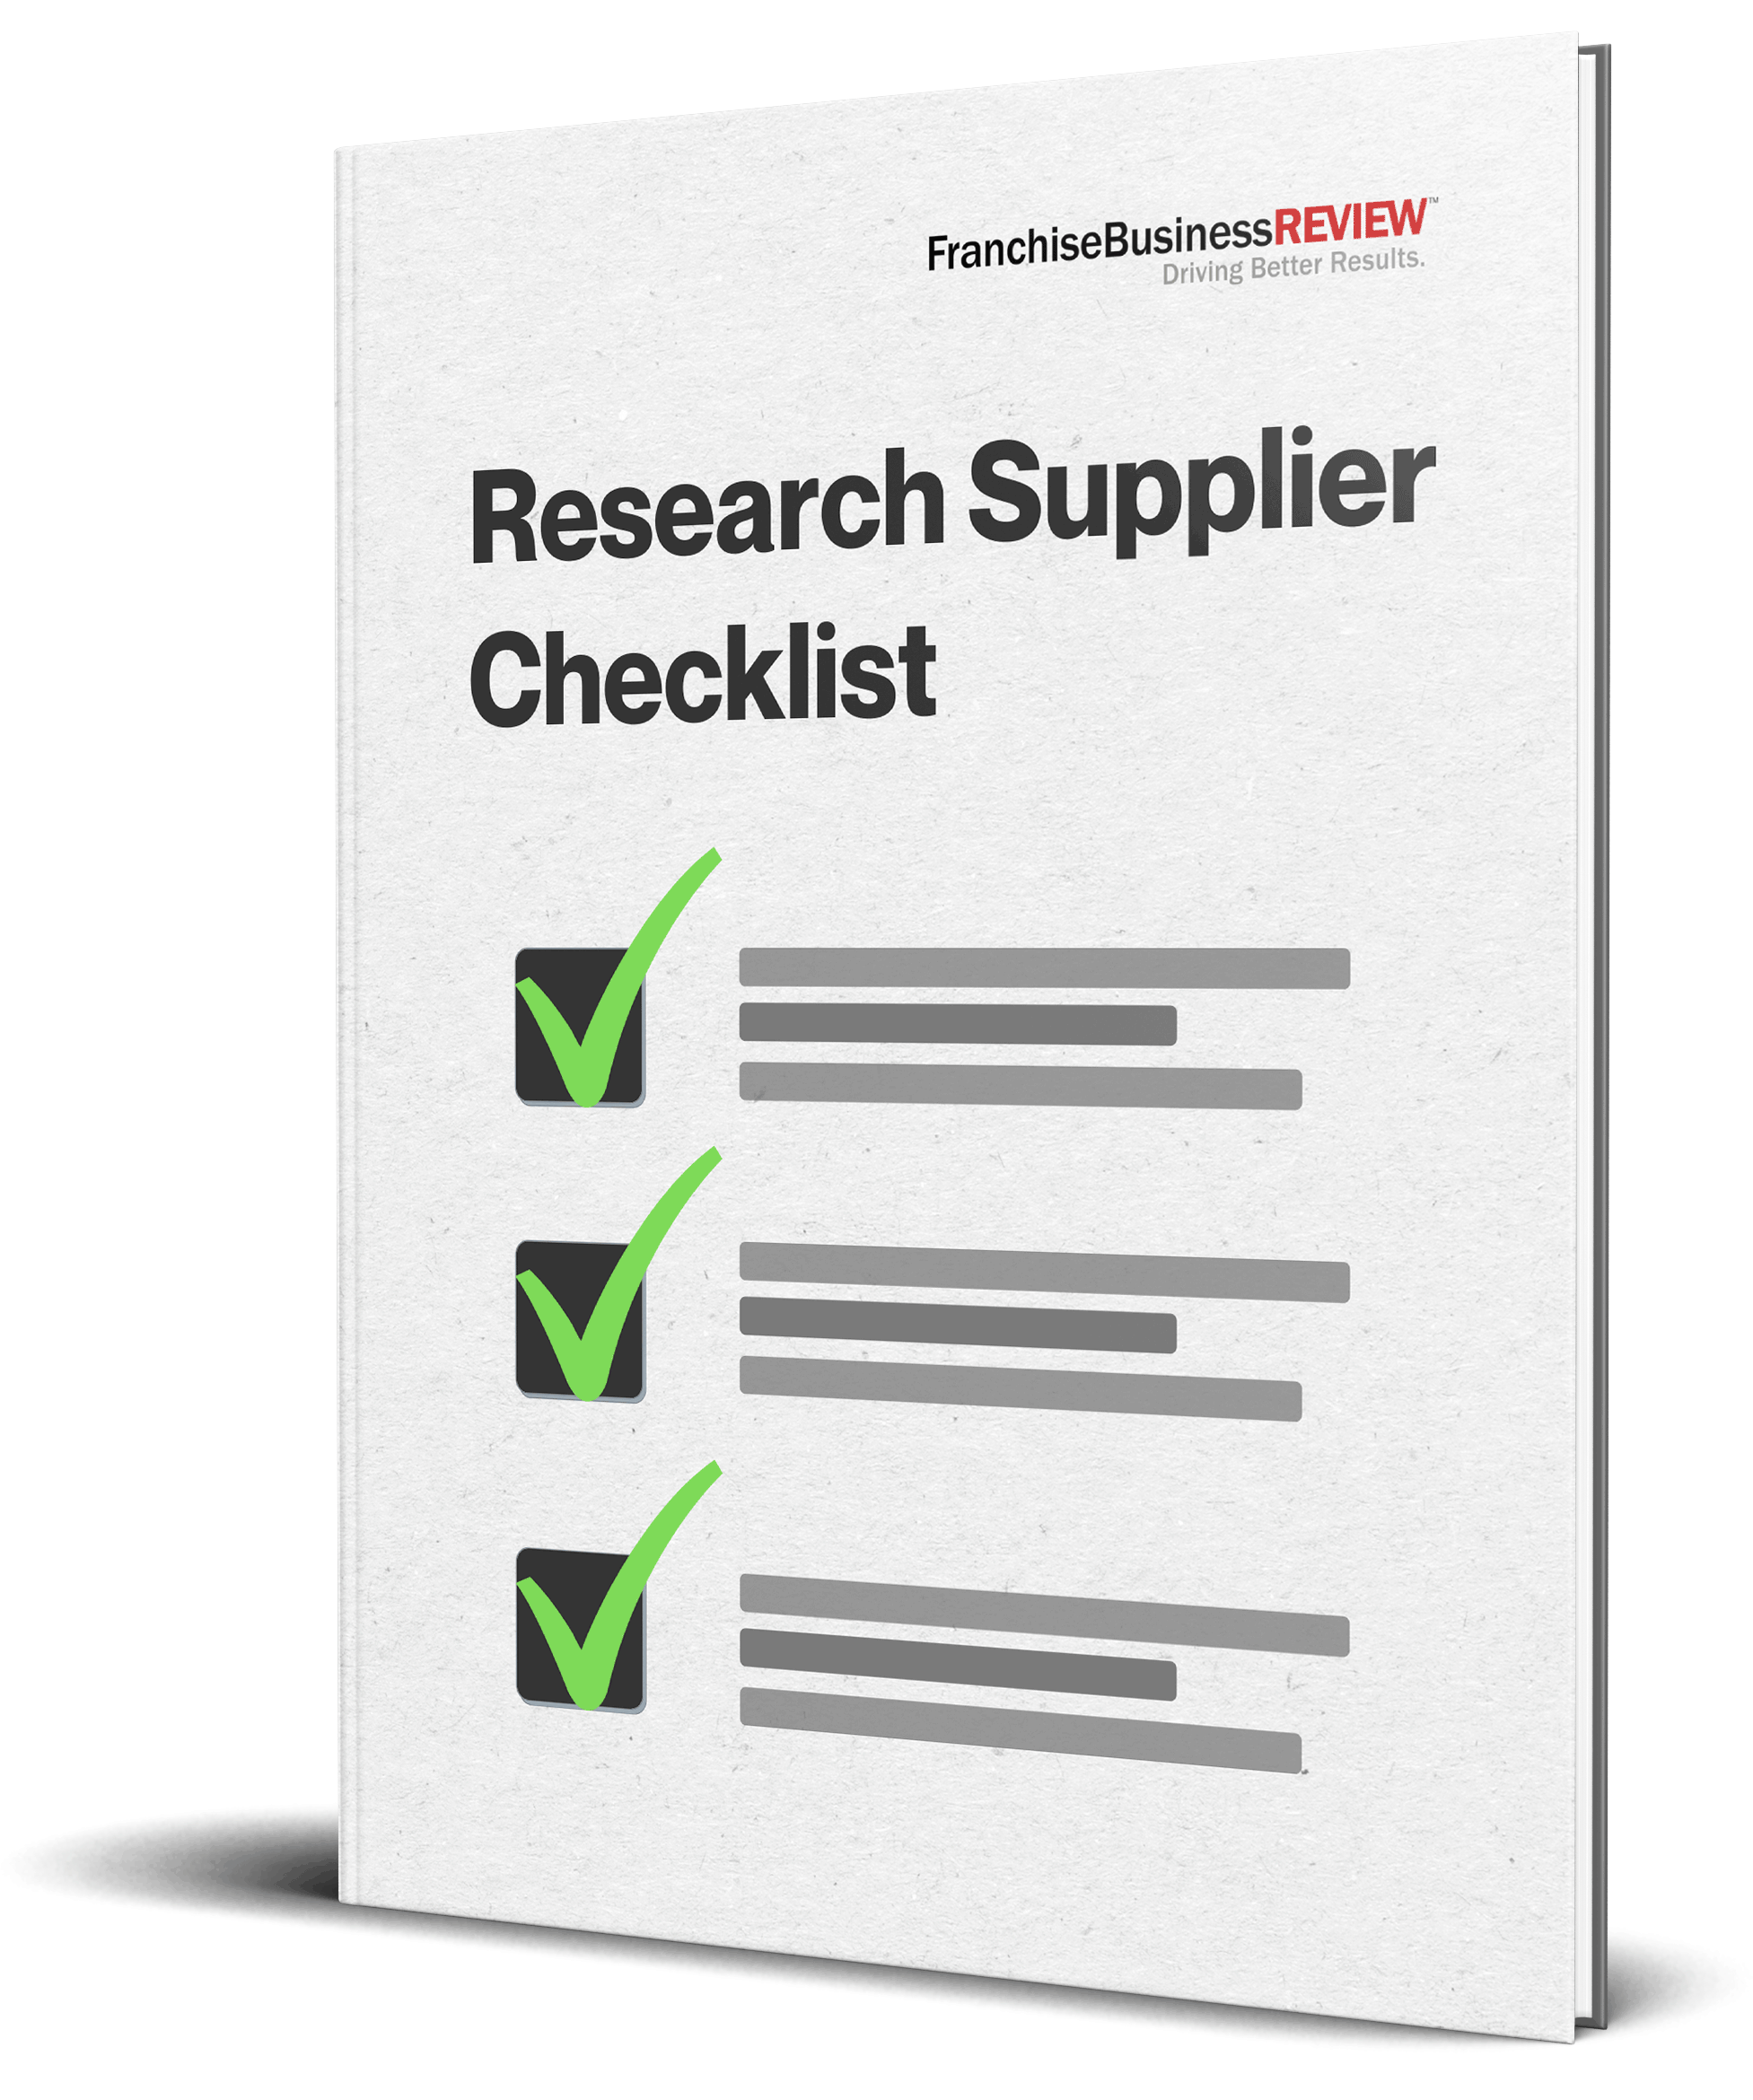 research_supplier_checklist_product_shot